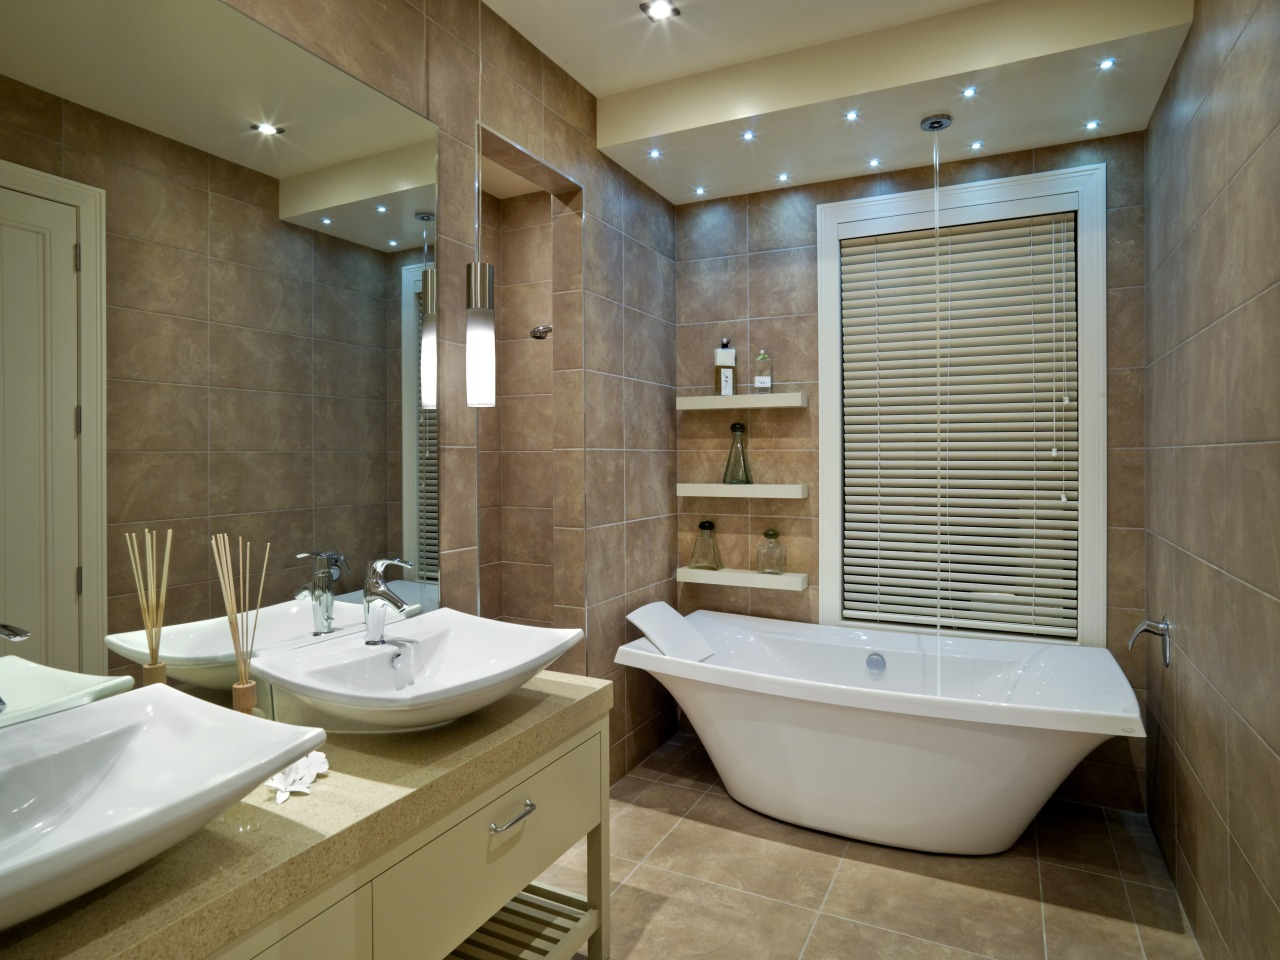 A view of some bathroomware from Kholer. bathroom, estate, home, interior design, room, brown, gray